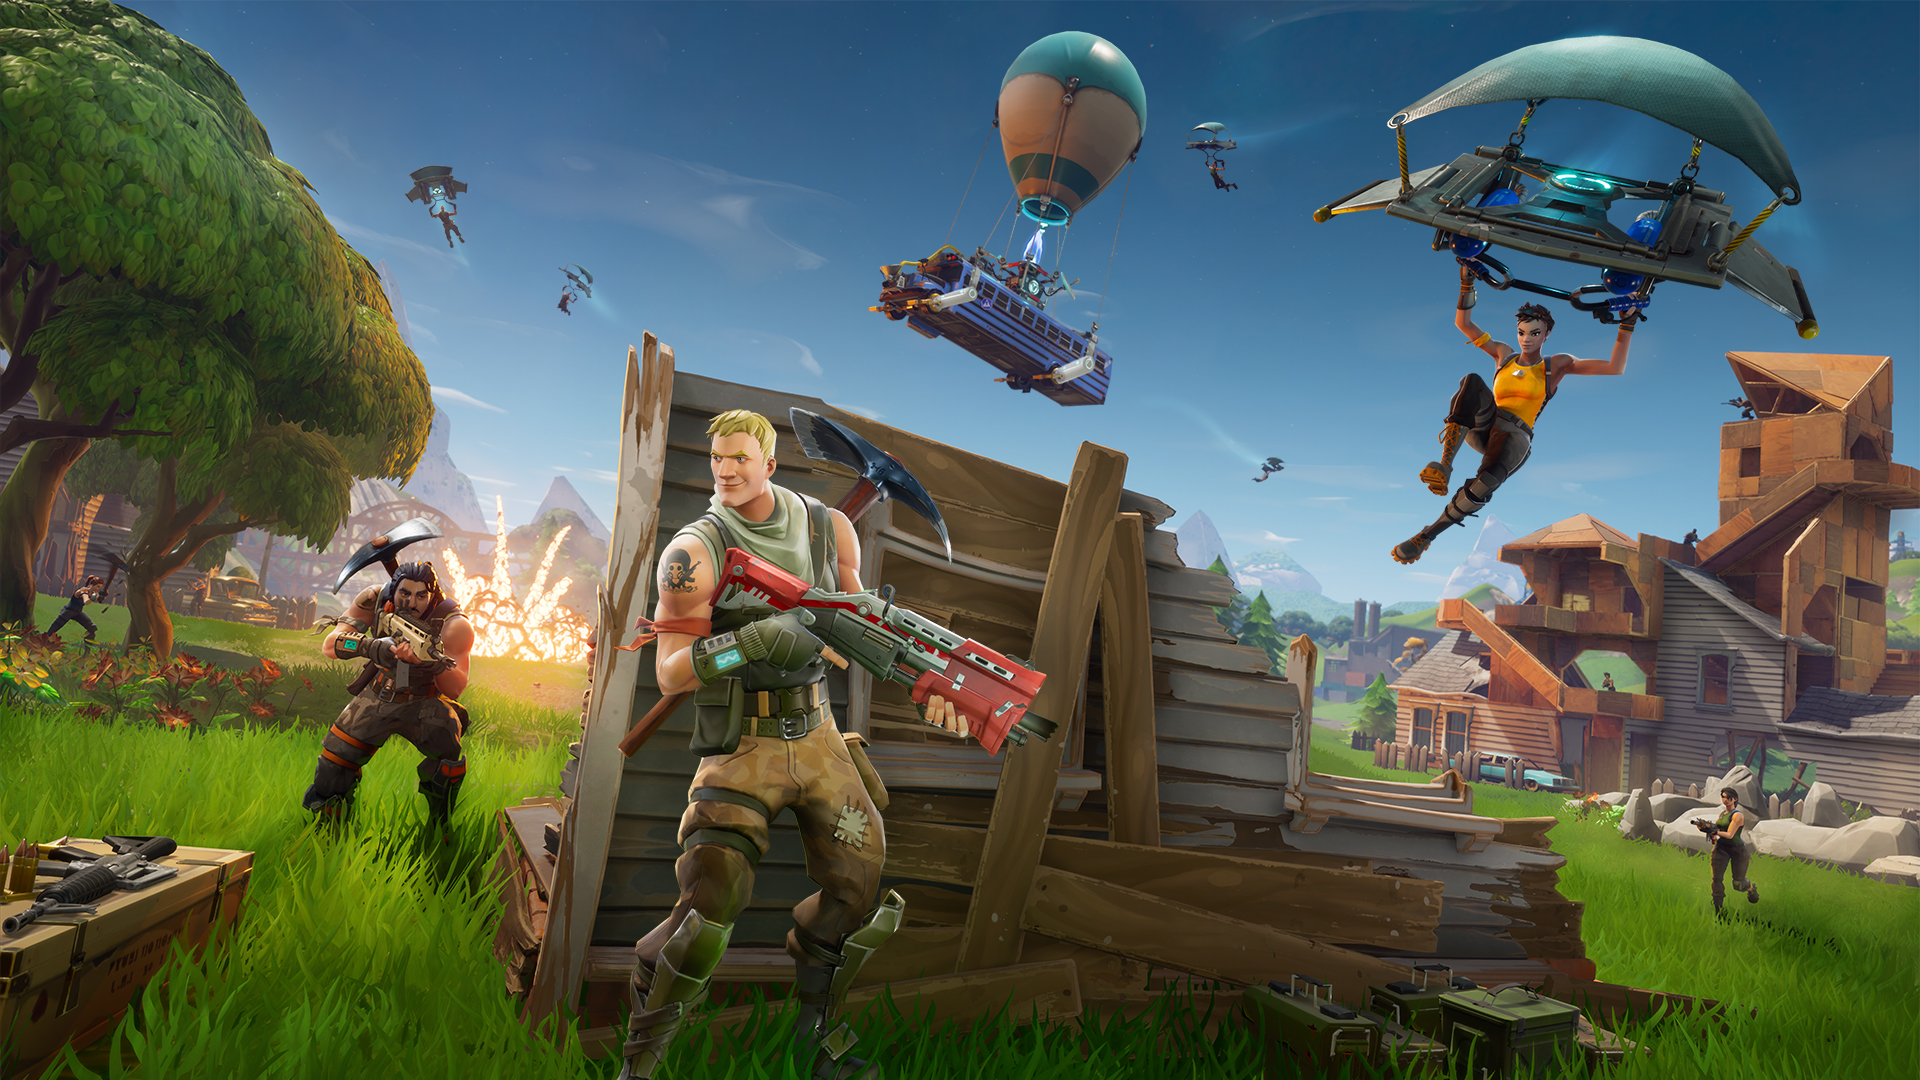 Fortnite runs at 1728p resolution on Xbox One X compared to